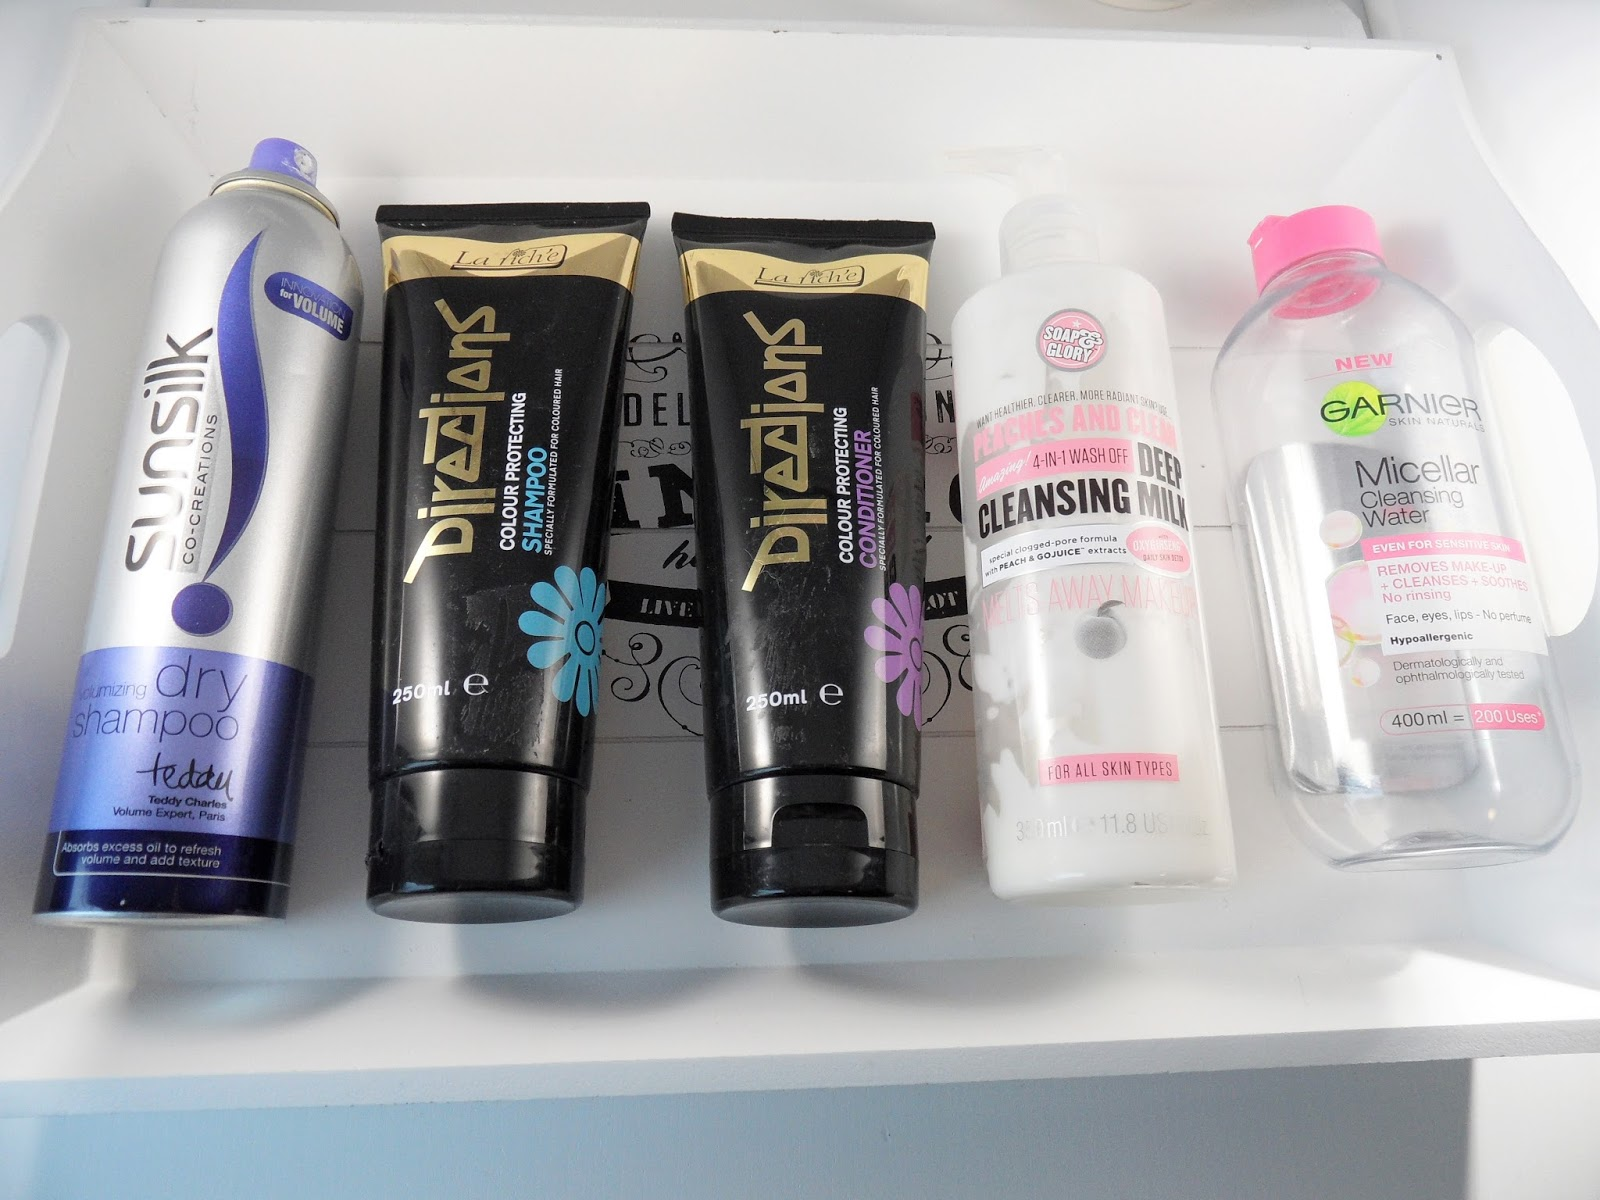 January 2016 product empties sunsilk la rich directions shampoo review www.eyelinerflicks.com blog